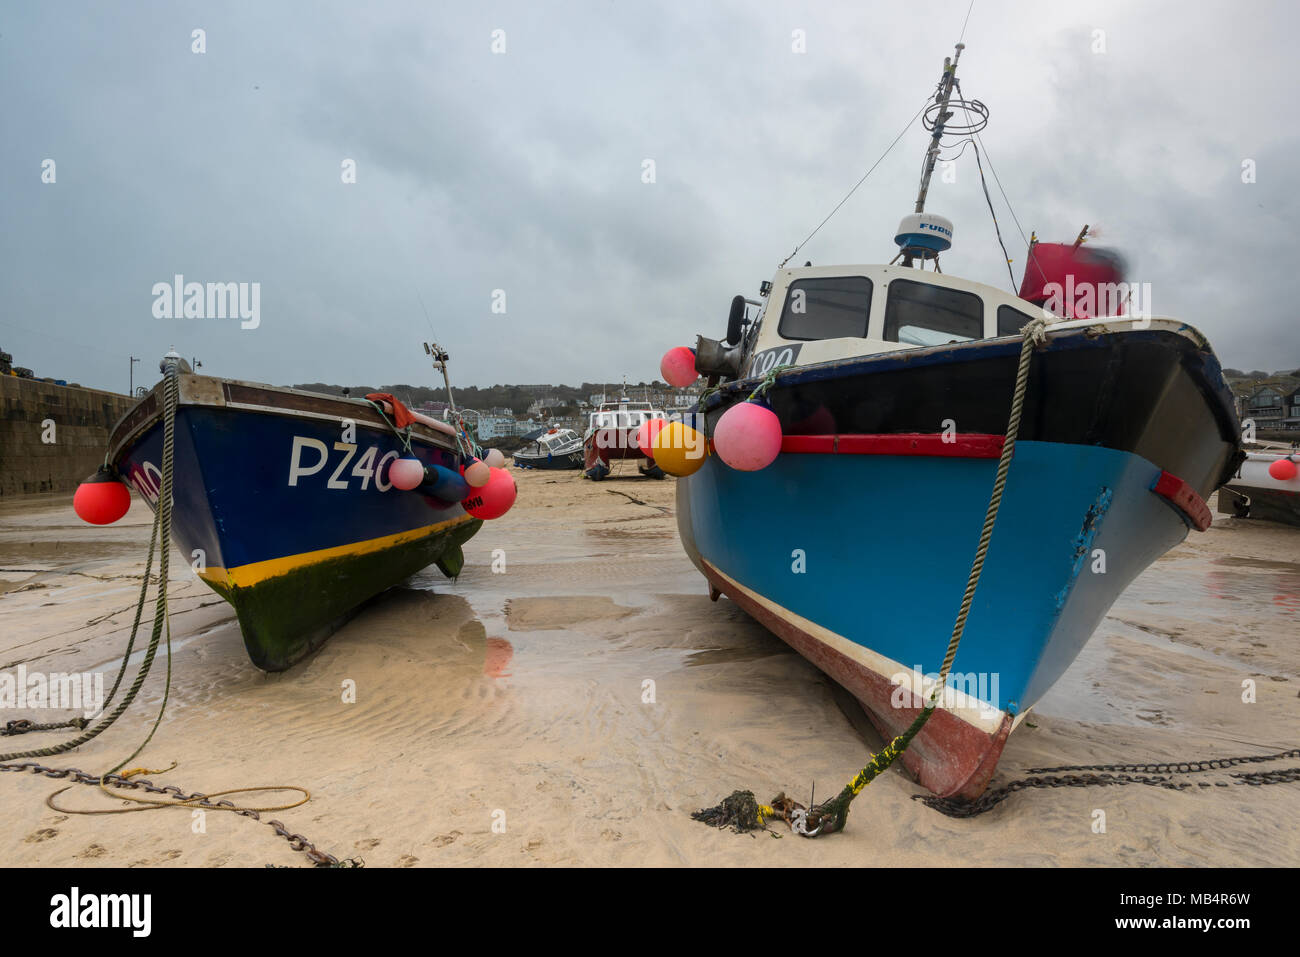 Fishing boats on the beach in the harbour at st Ives in west cornwall high and dry at low tide. Fishermen leaving boats and trawlers on the beach. Stock Photo